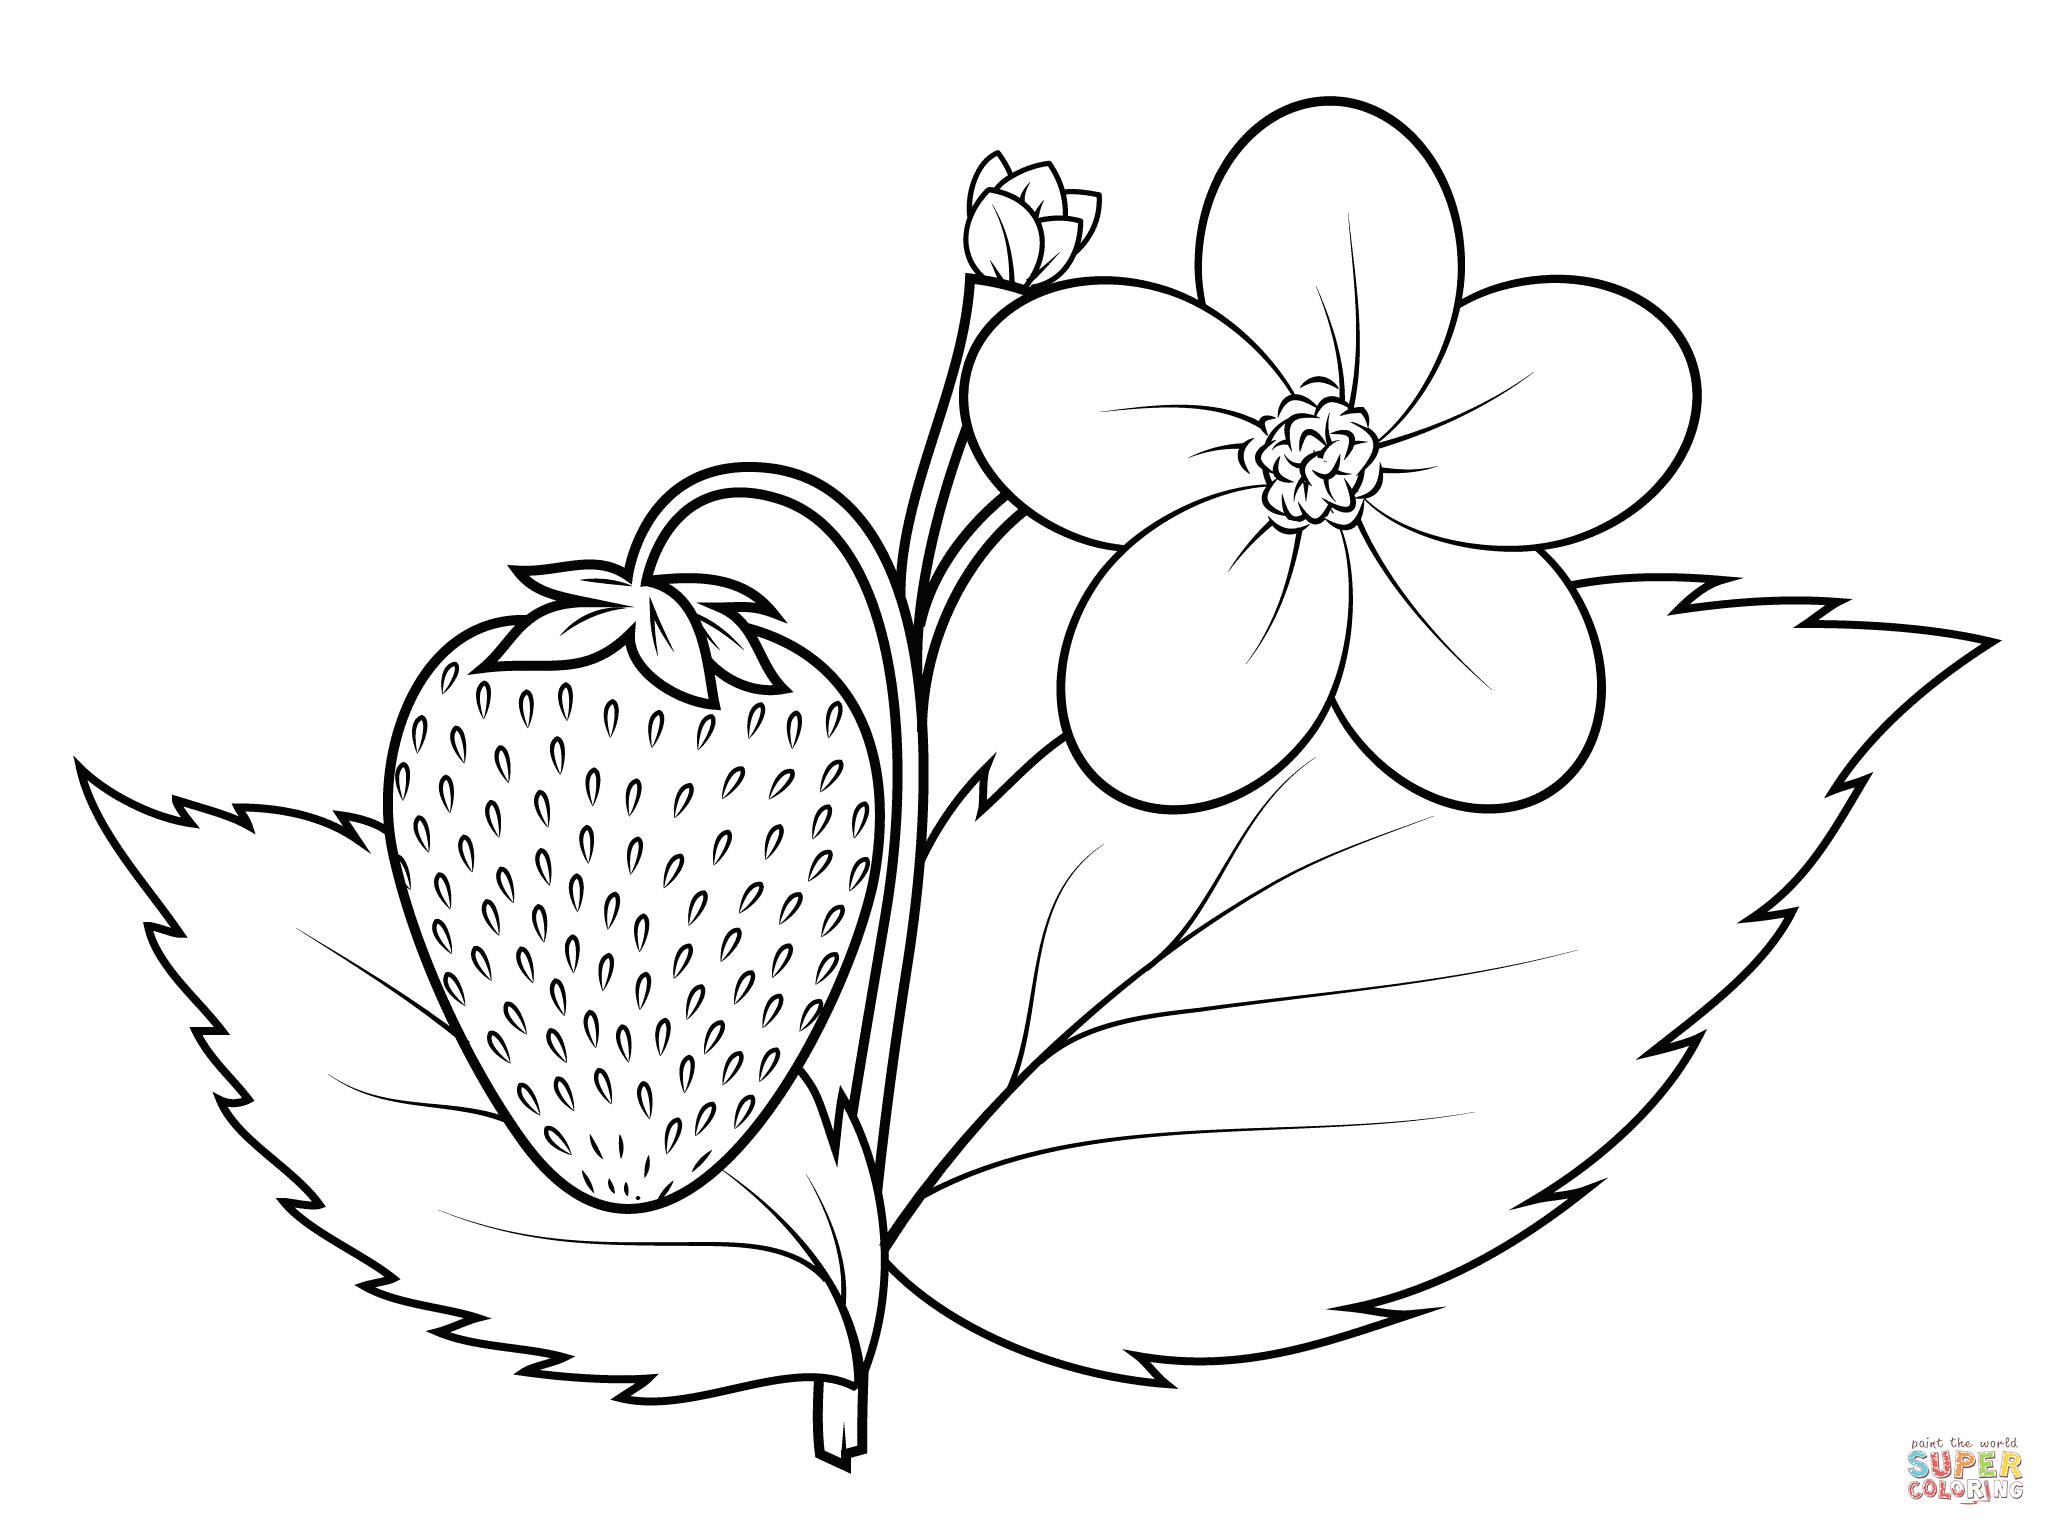 2046x1526 Strawberry Plant Coloring Page Free Printable Coloring Pages